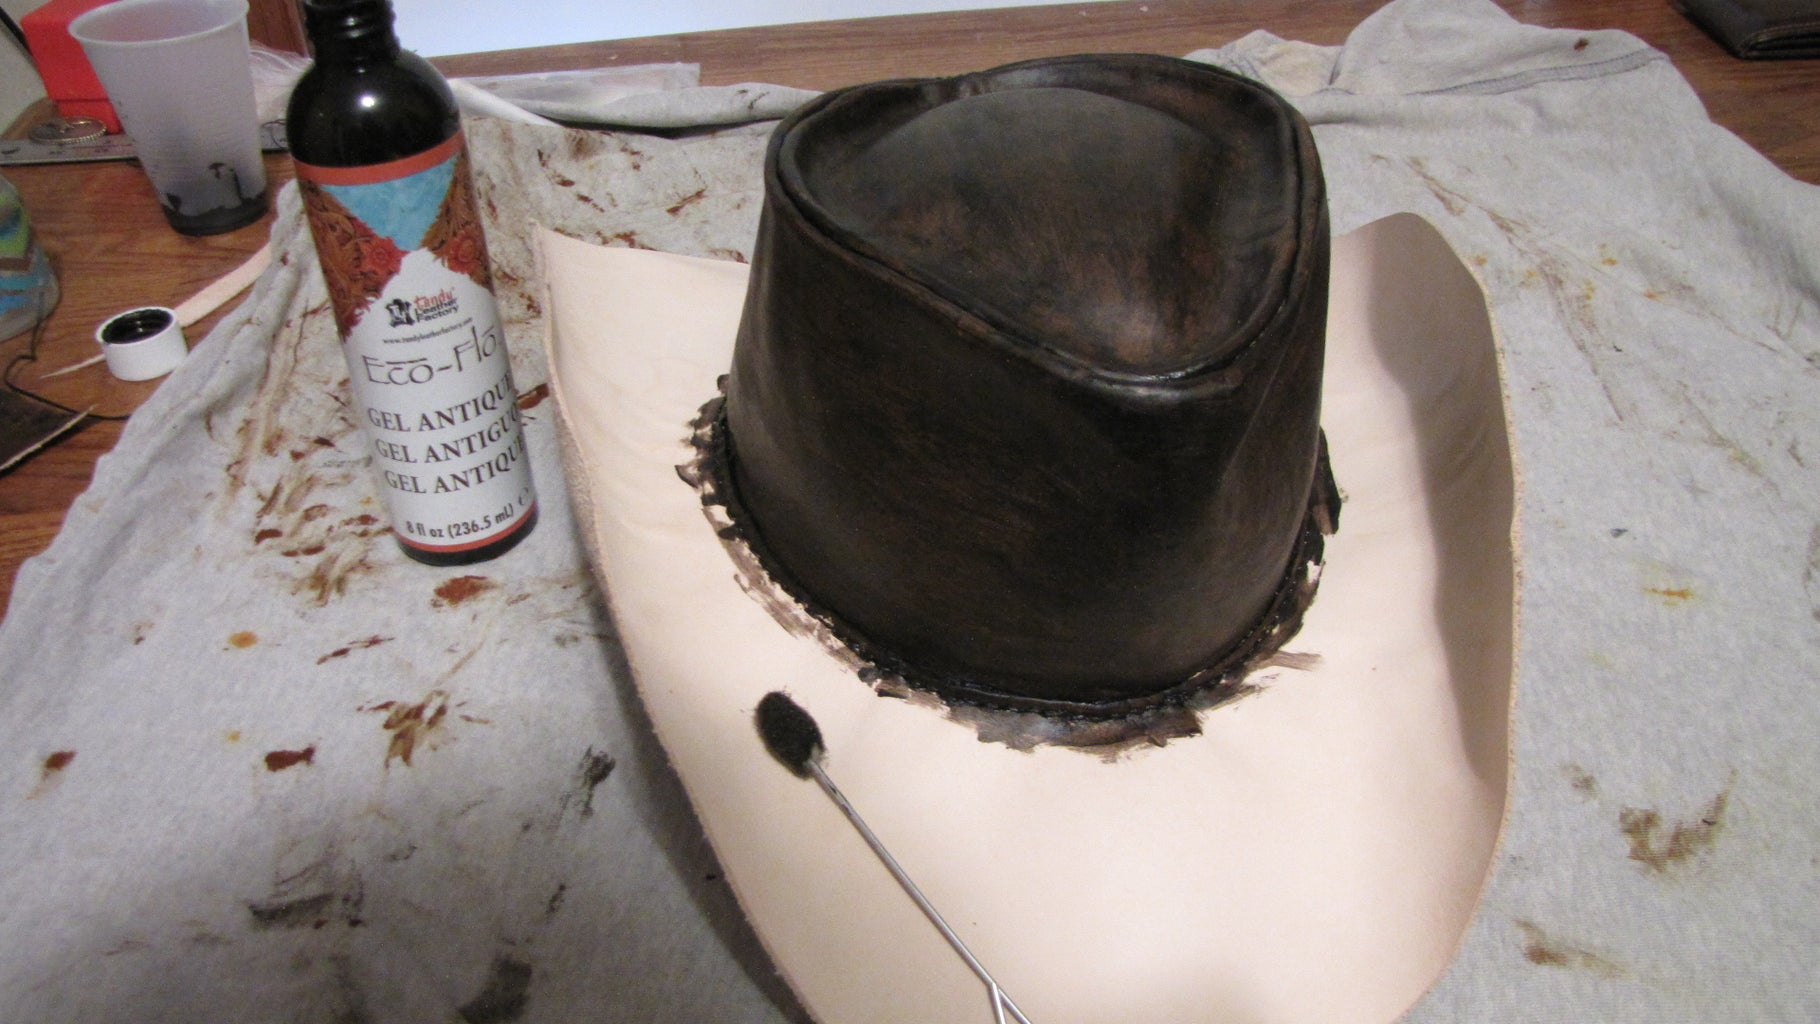 Staining and Putting a Finish on the Hat